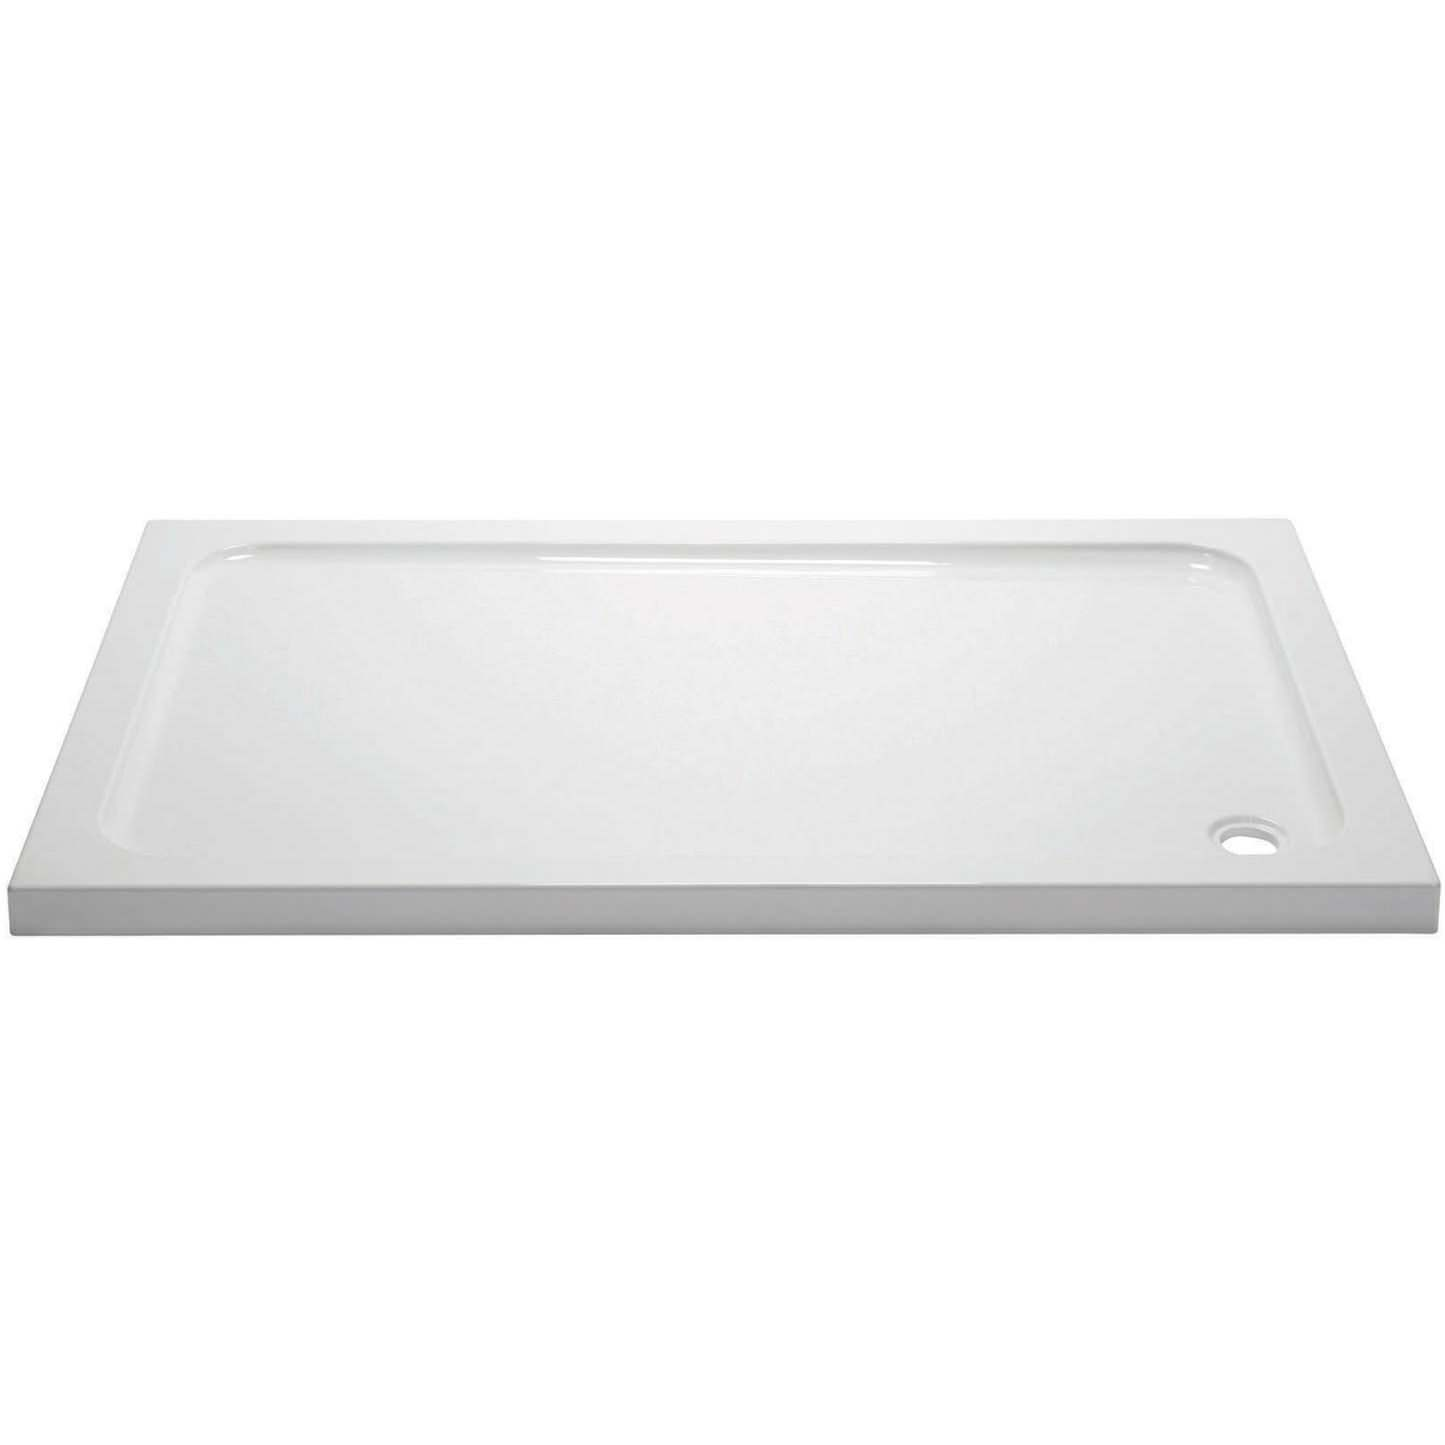 April rectangular 1100 x 700mm shower tray for Small baths 1100